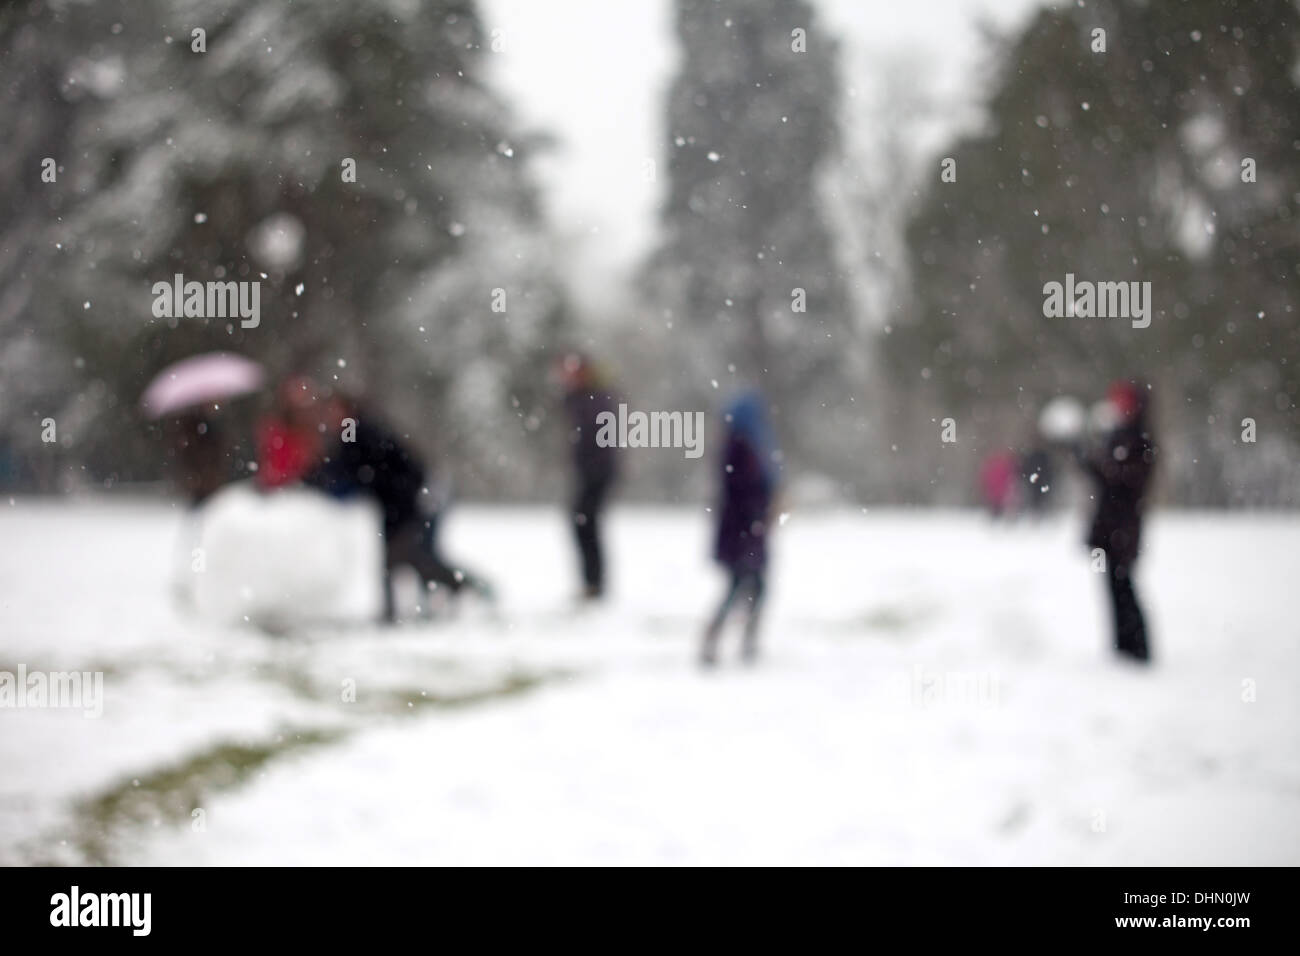 out of focus people playing in the snow making a snowman having snowball fight in parkland setting - Stock Image